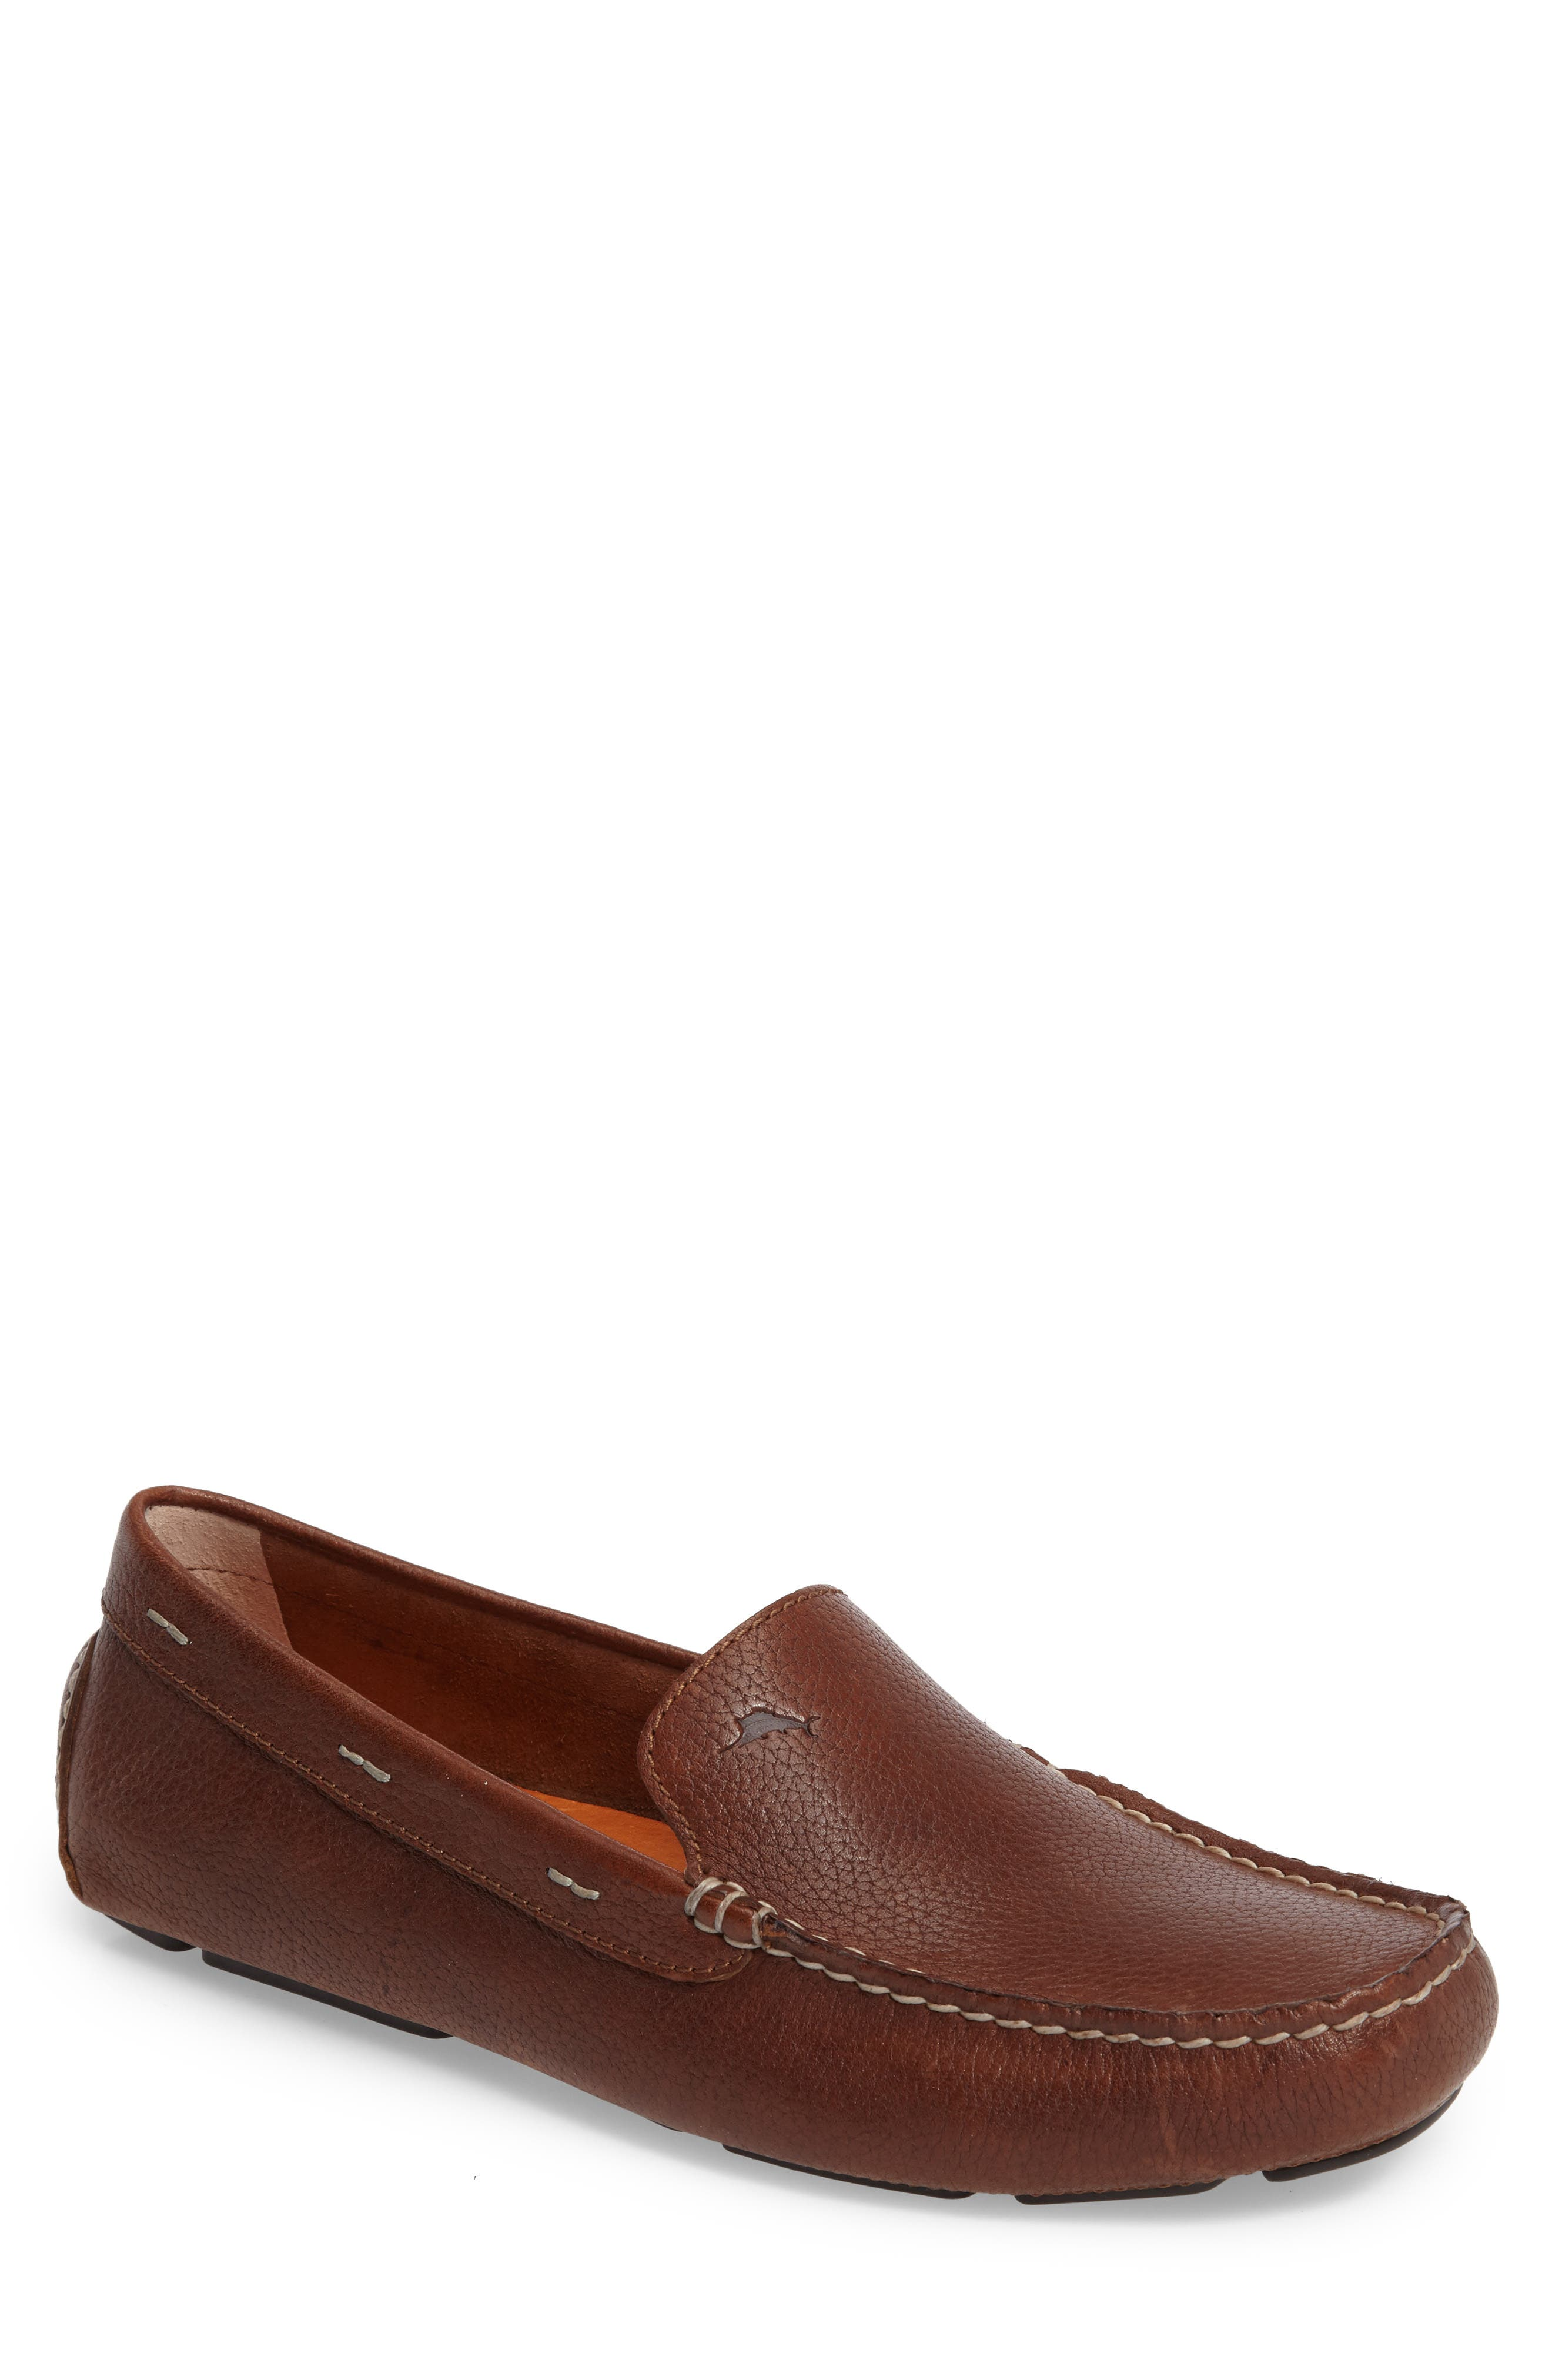 Pagota Driving Loafer,                         Main,                         color, DARK BROWN LEATHER